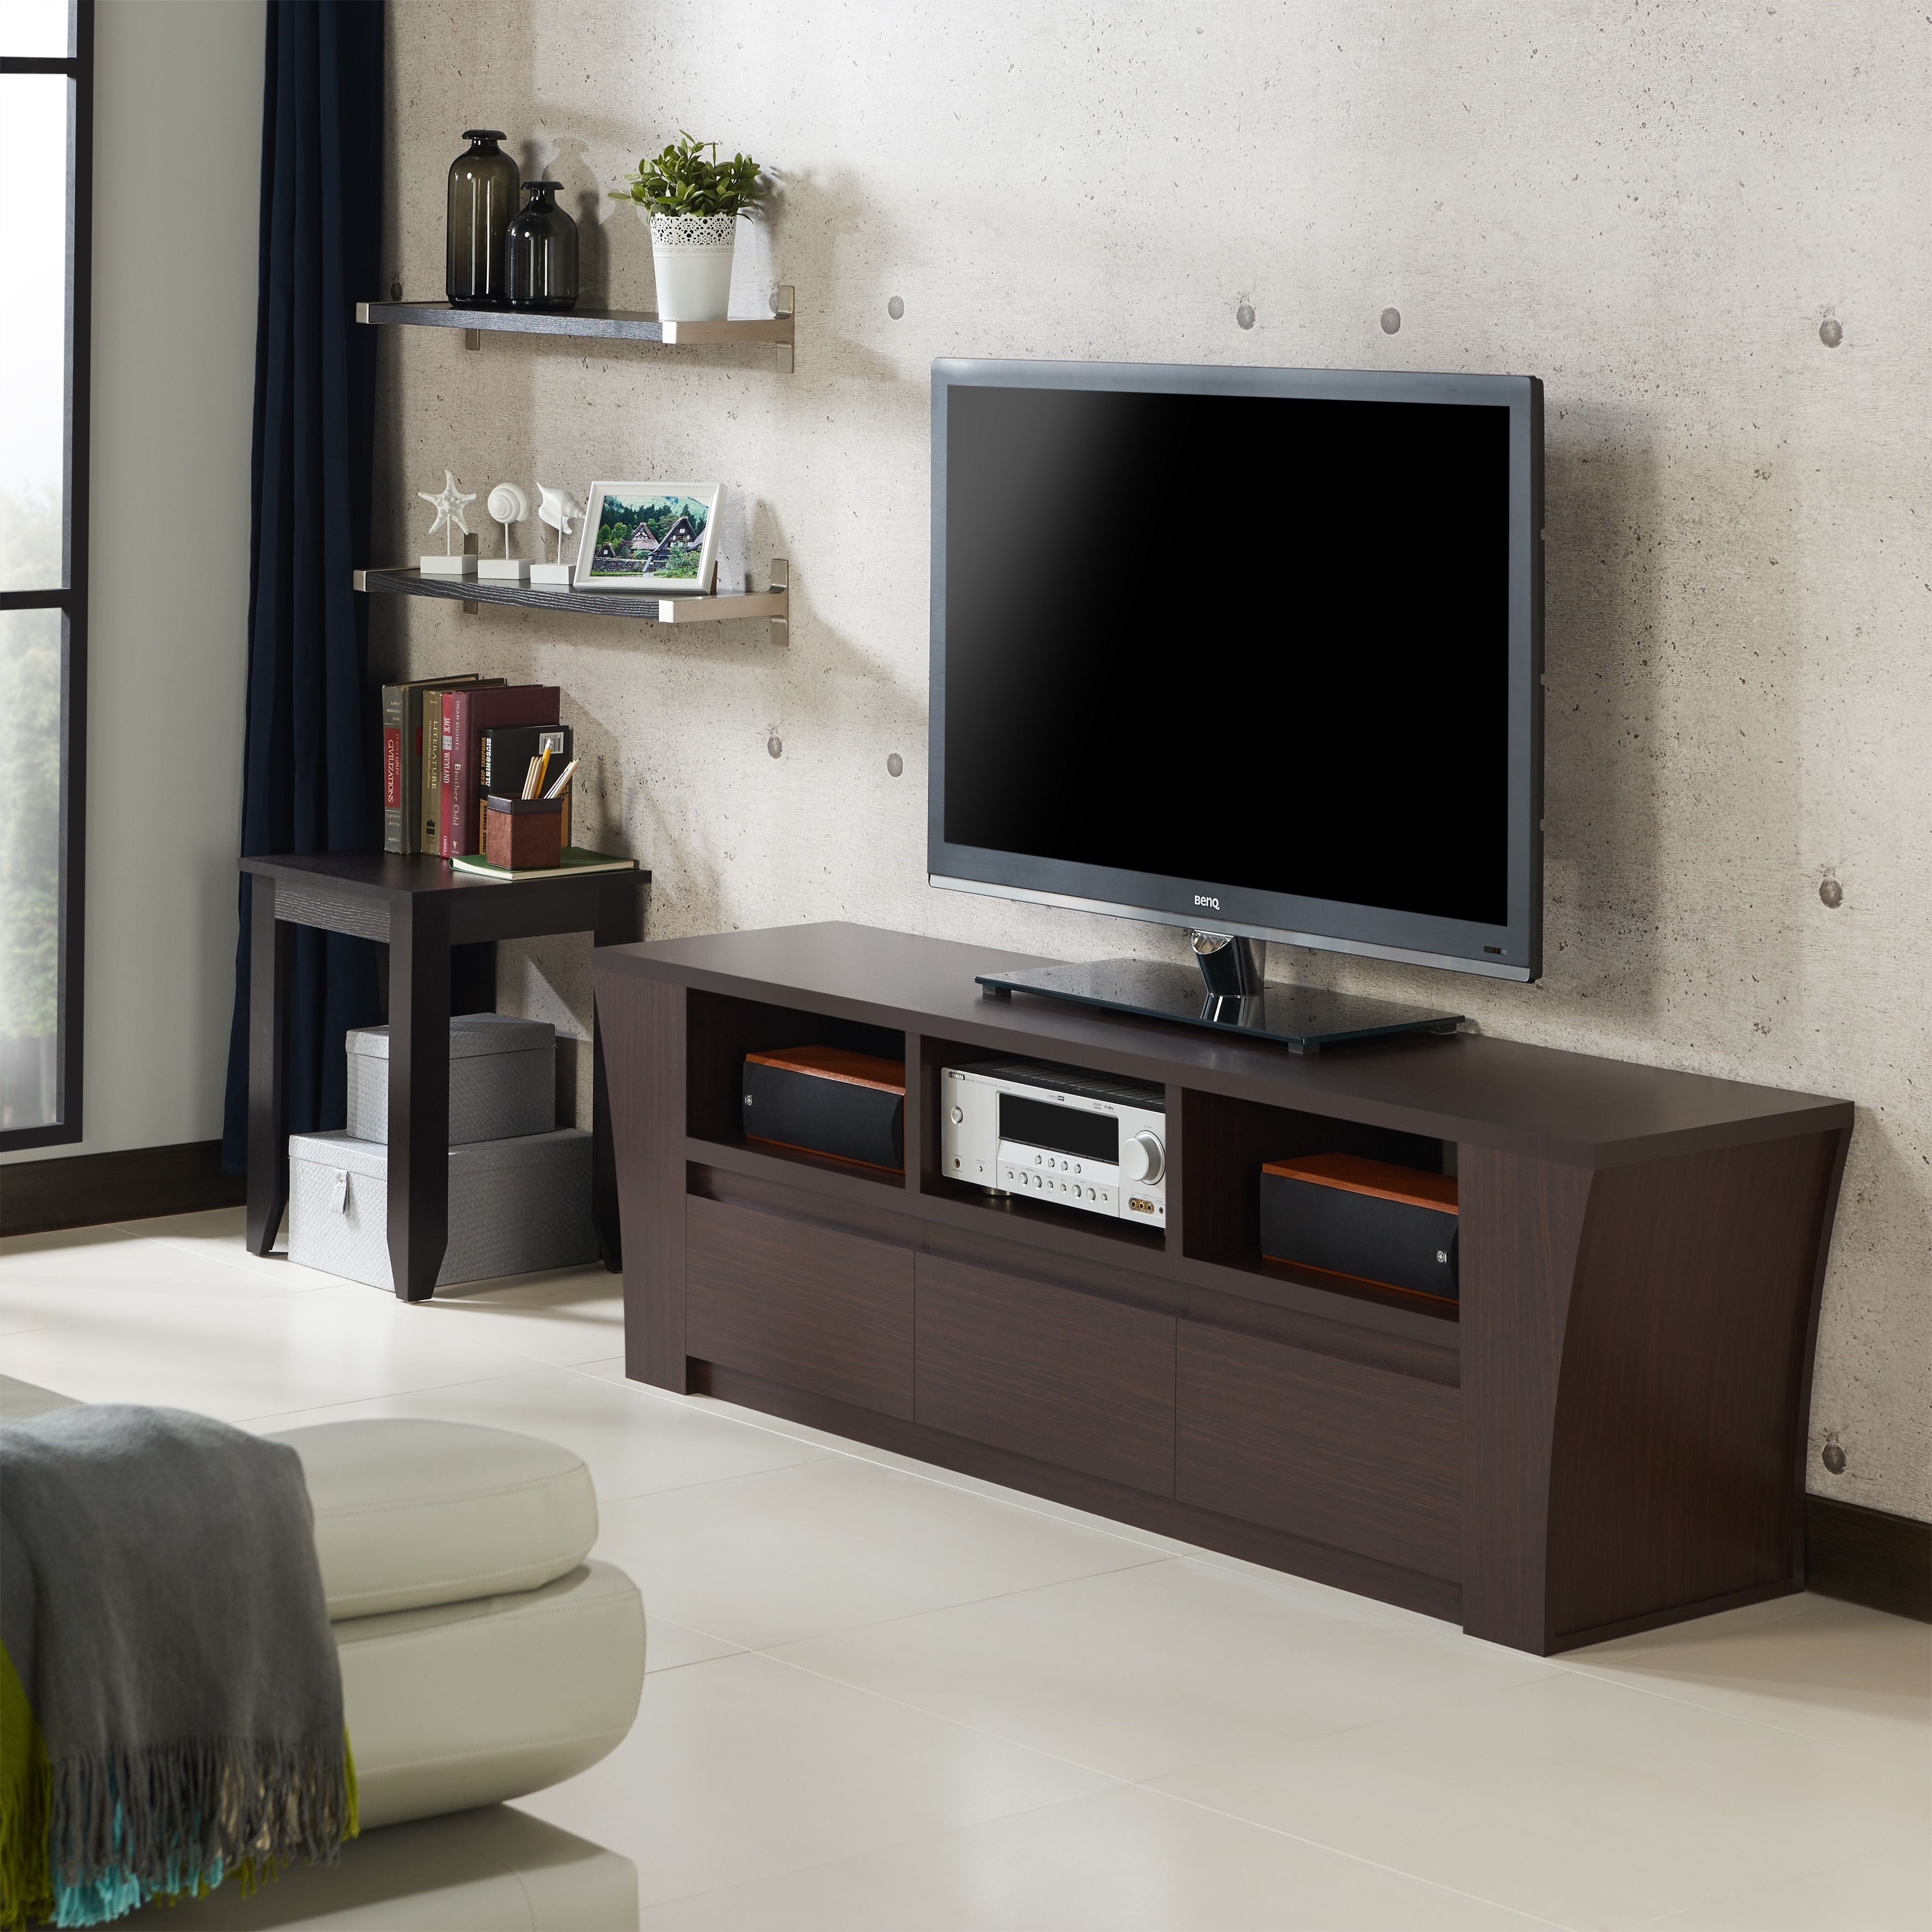 Shop Furniture Of America Carren Flared Walnut 3 Drawer TV Stand   Free  Shipping Today   Overstock.com   10958351